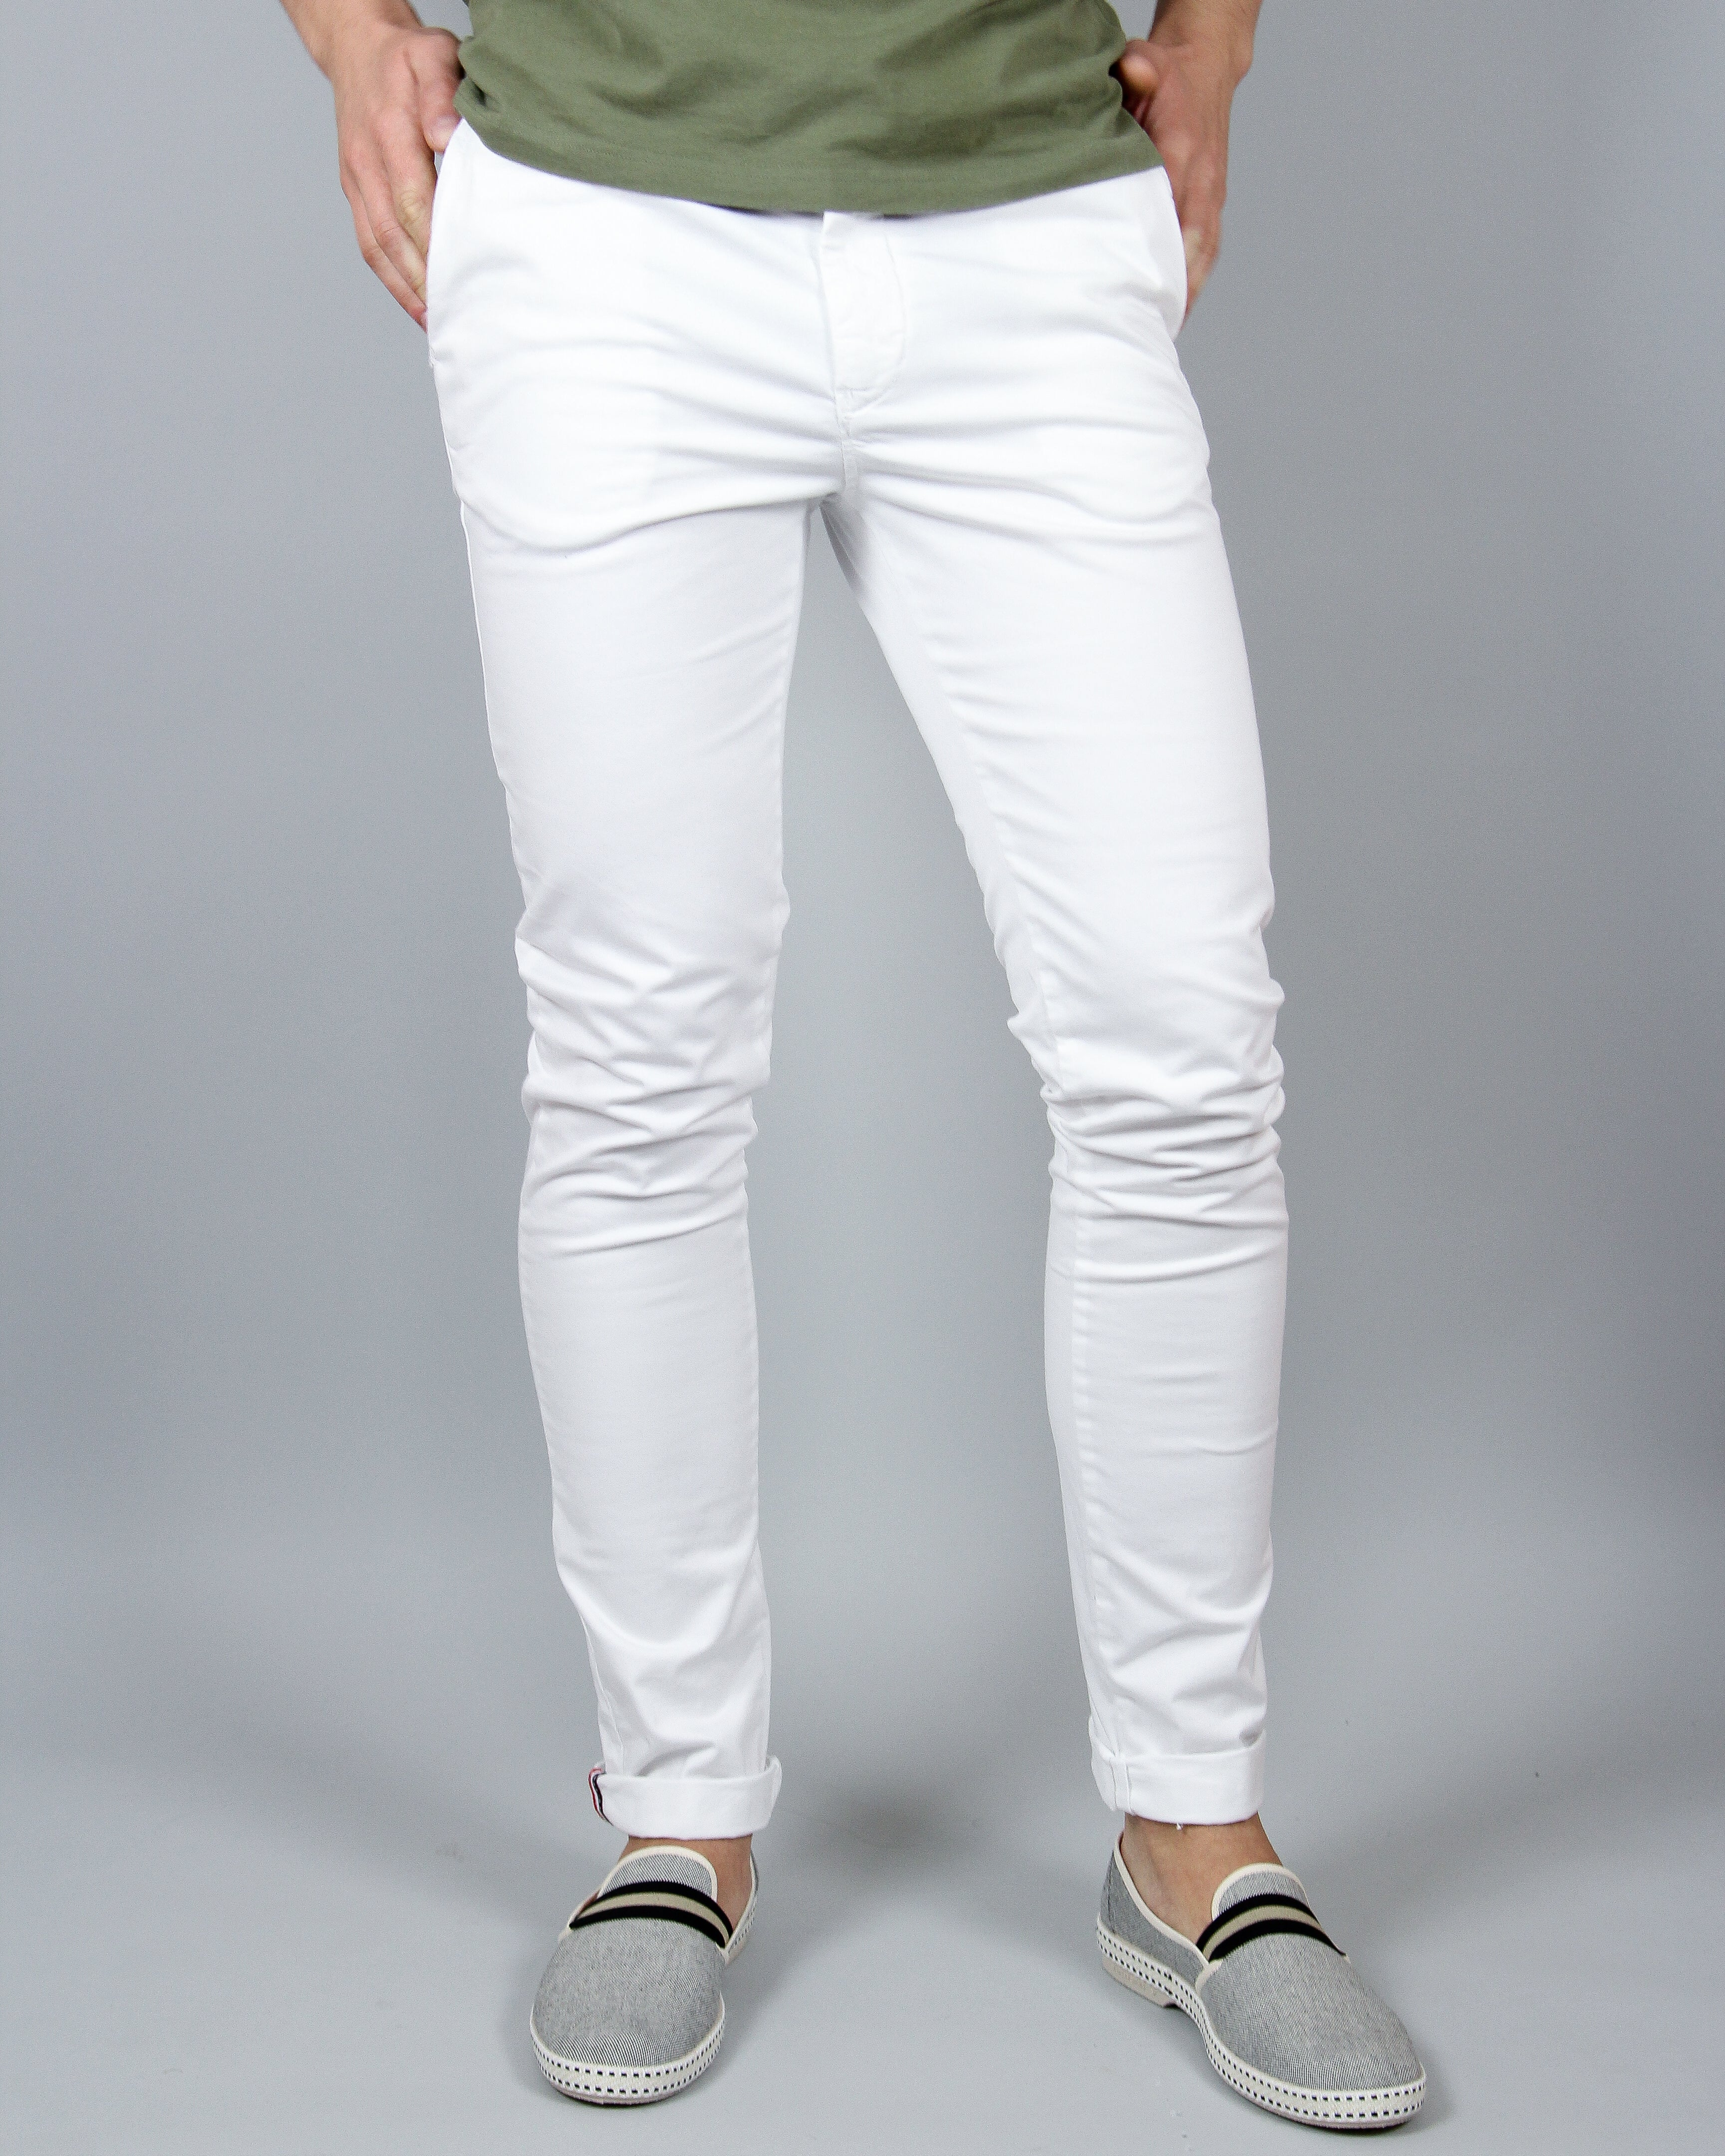 Hero Seven White Chino